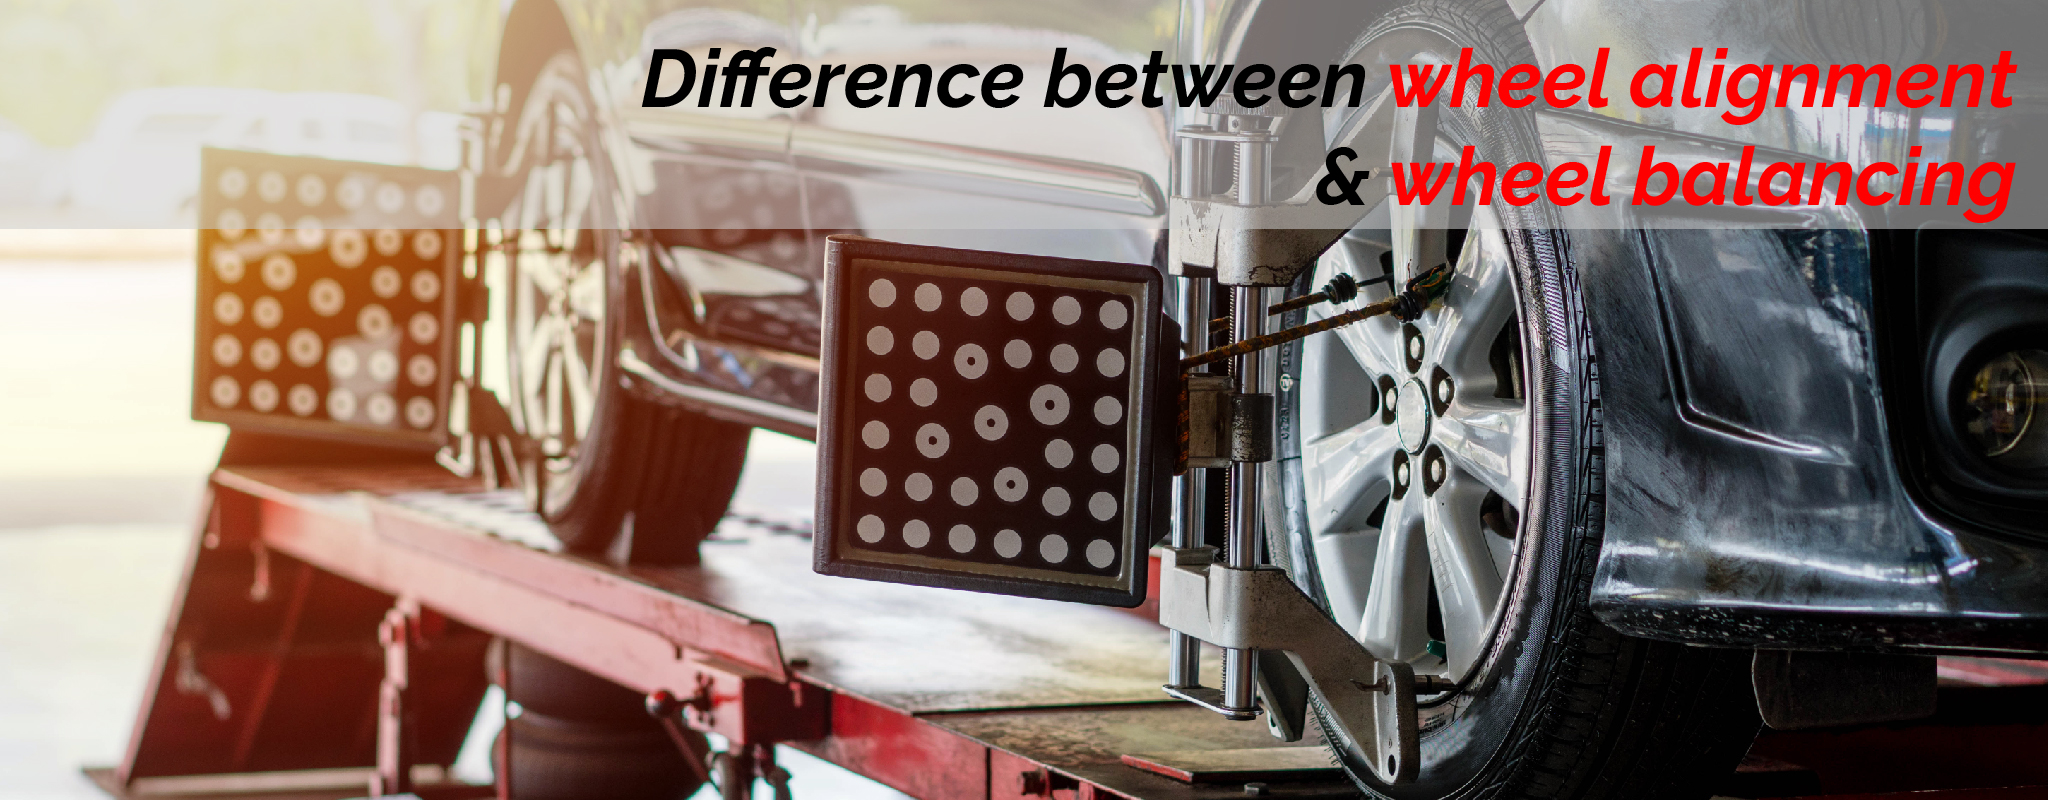 difference between wheel alignment and wheel balancing